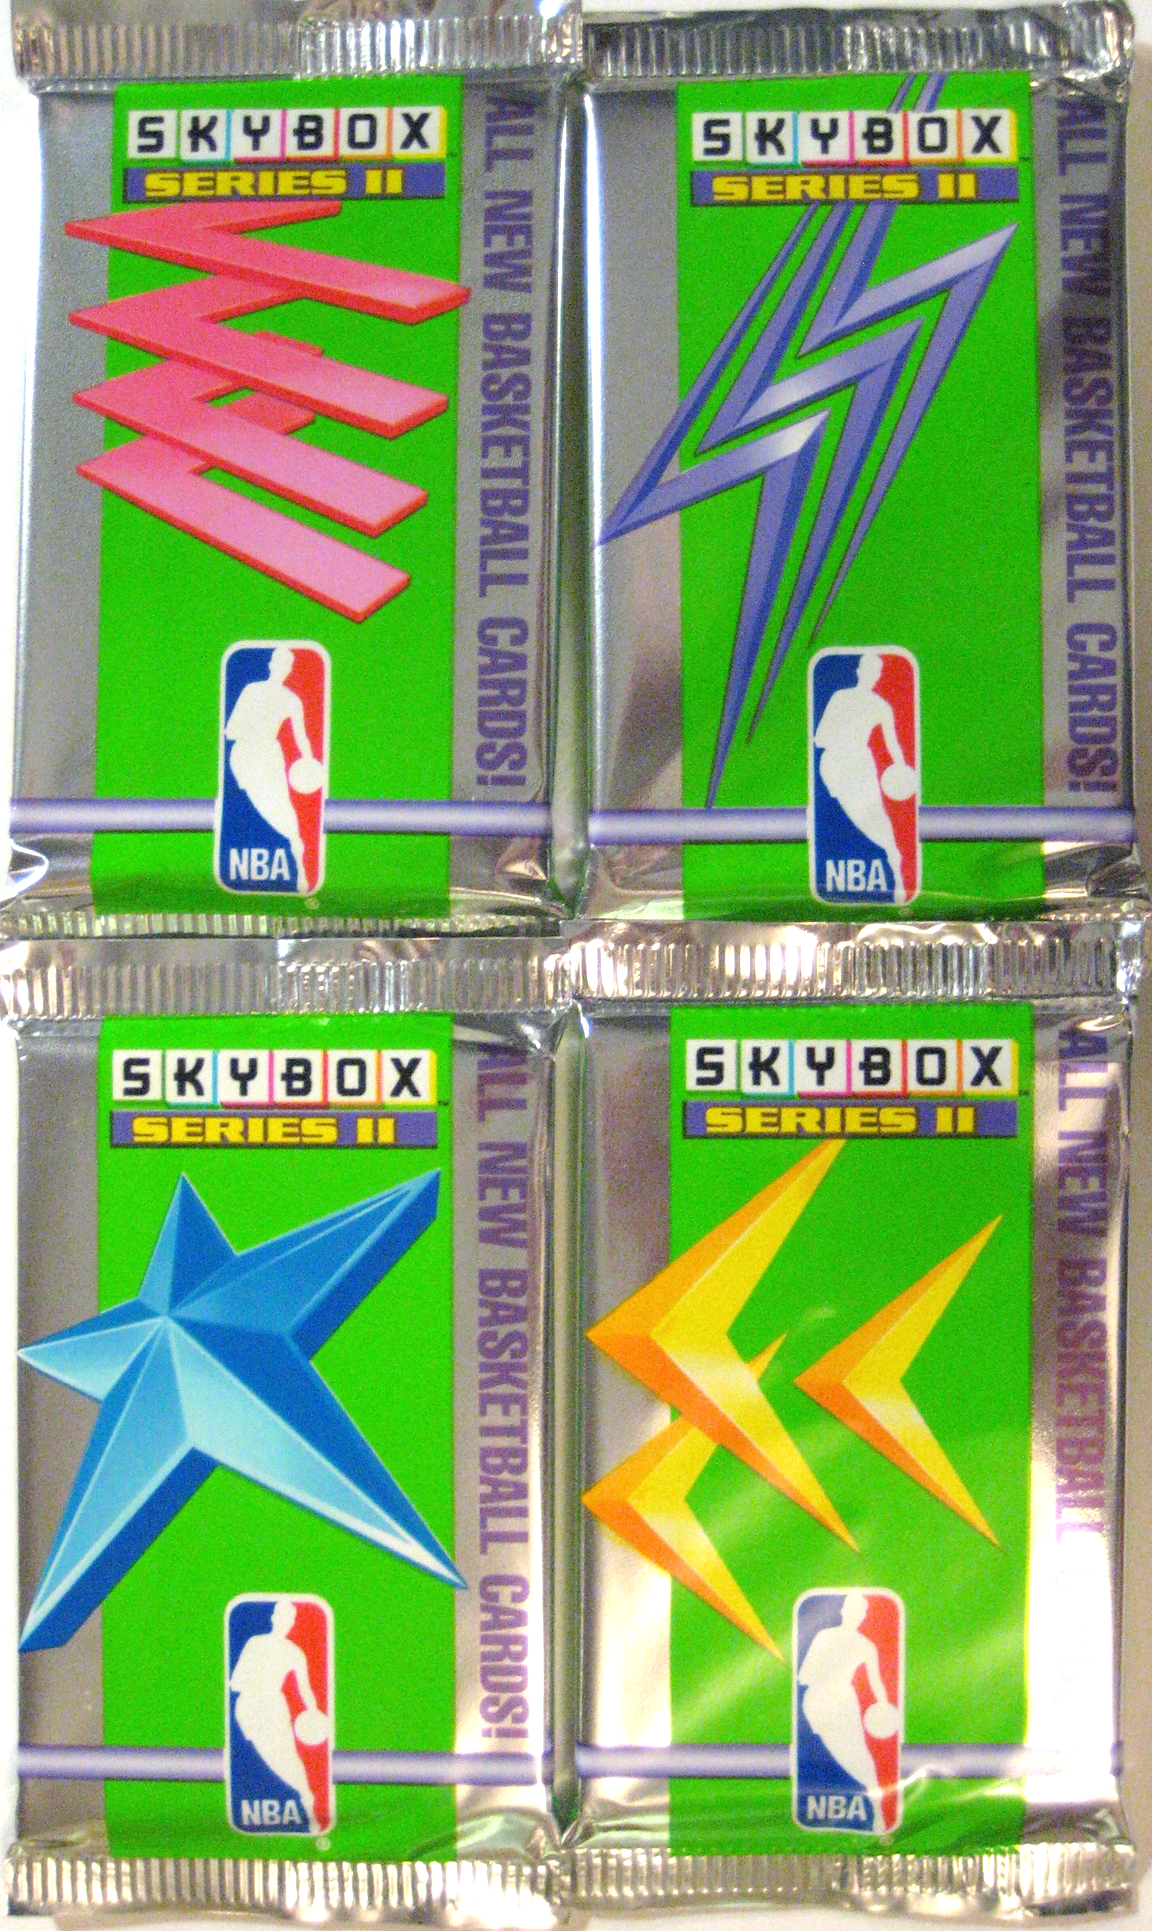 1991 Skybox Basketball Series 2 Pack: The companion to the Skybox Series 1. These have too beautiful a design to be ignored.